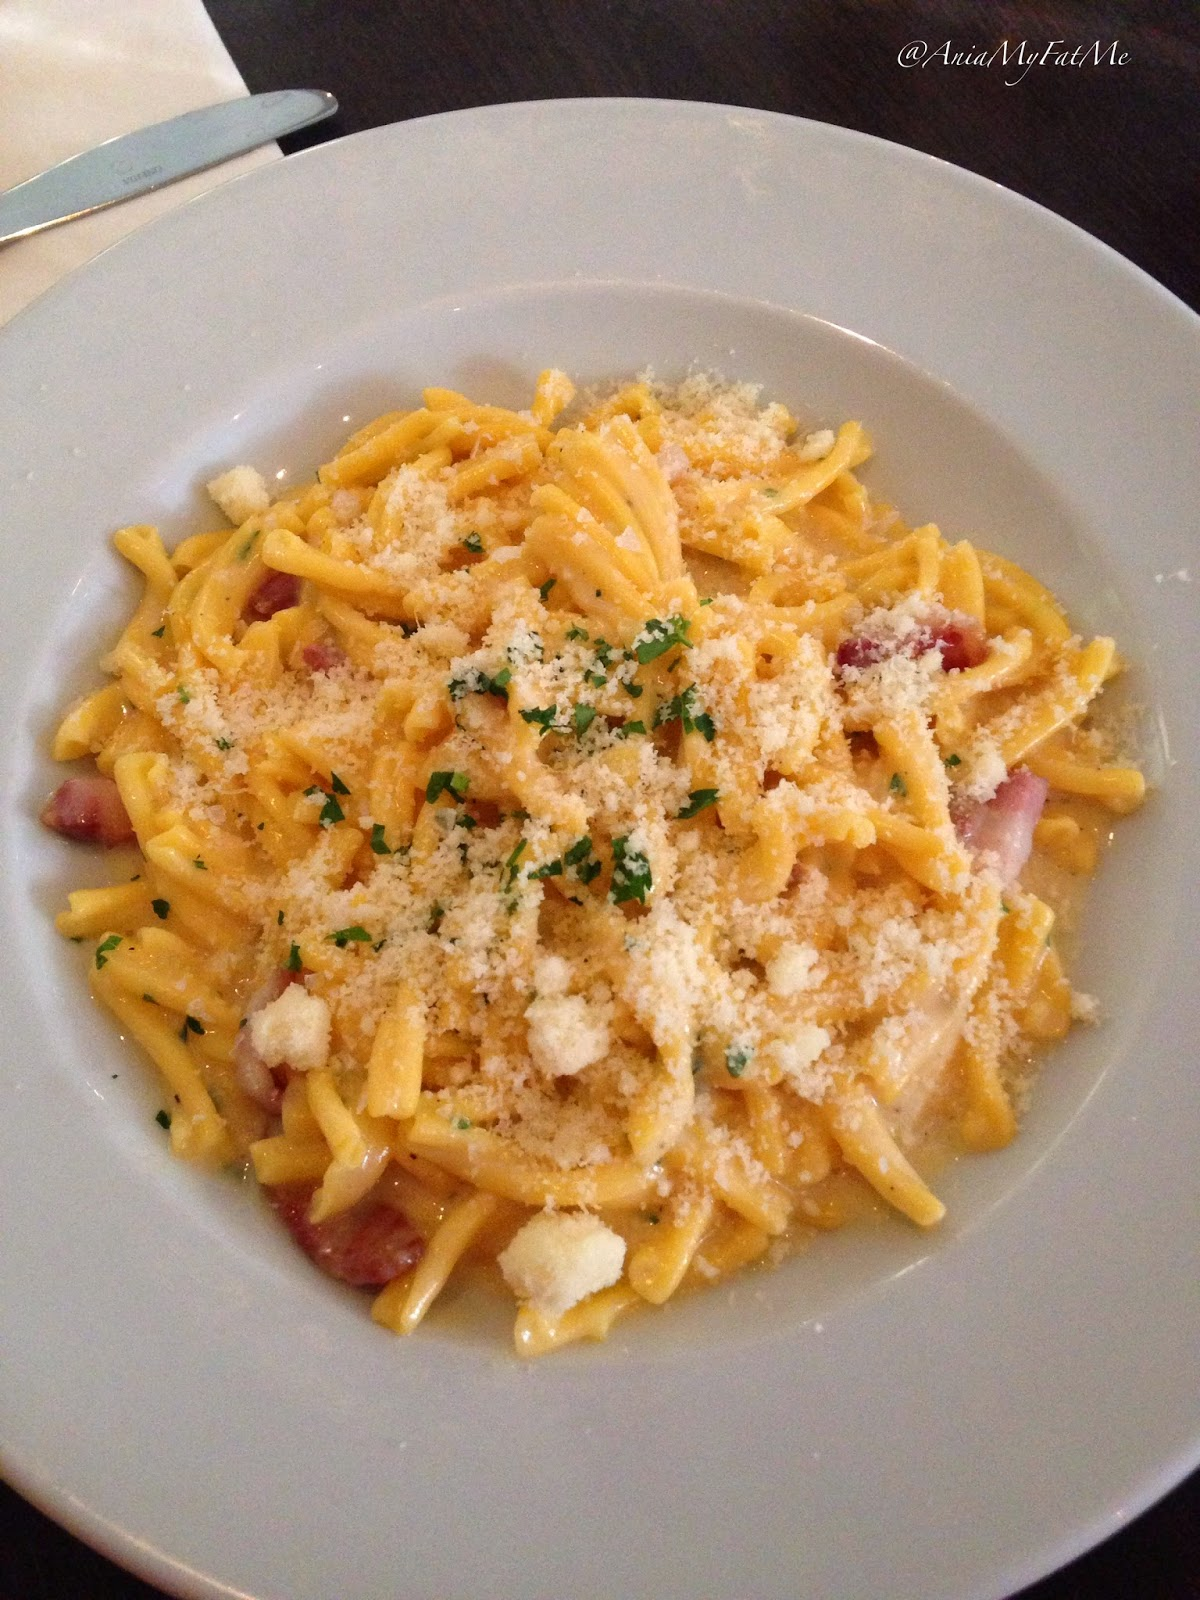 Carluccio's main dish gluten free Pasta CARBONARA with egg and smoky pancetta with parmesan cheese